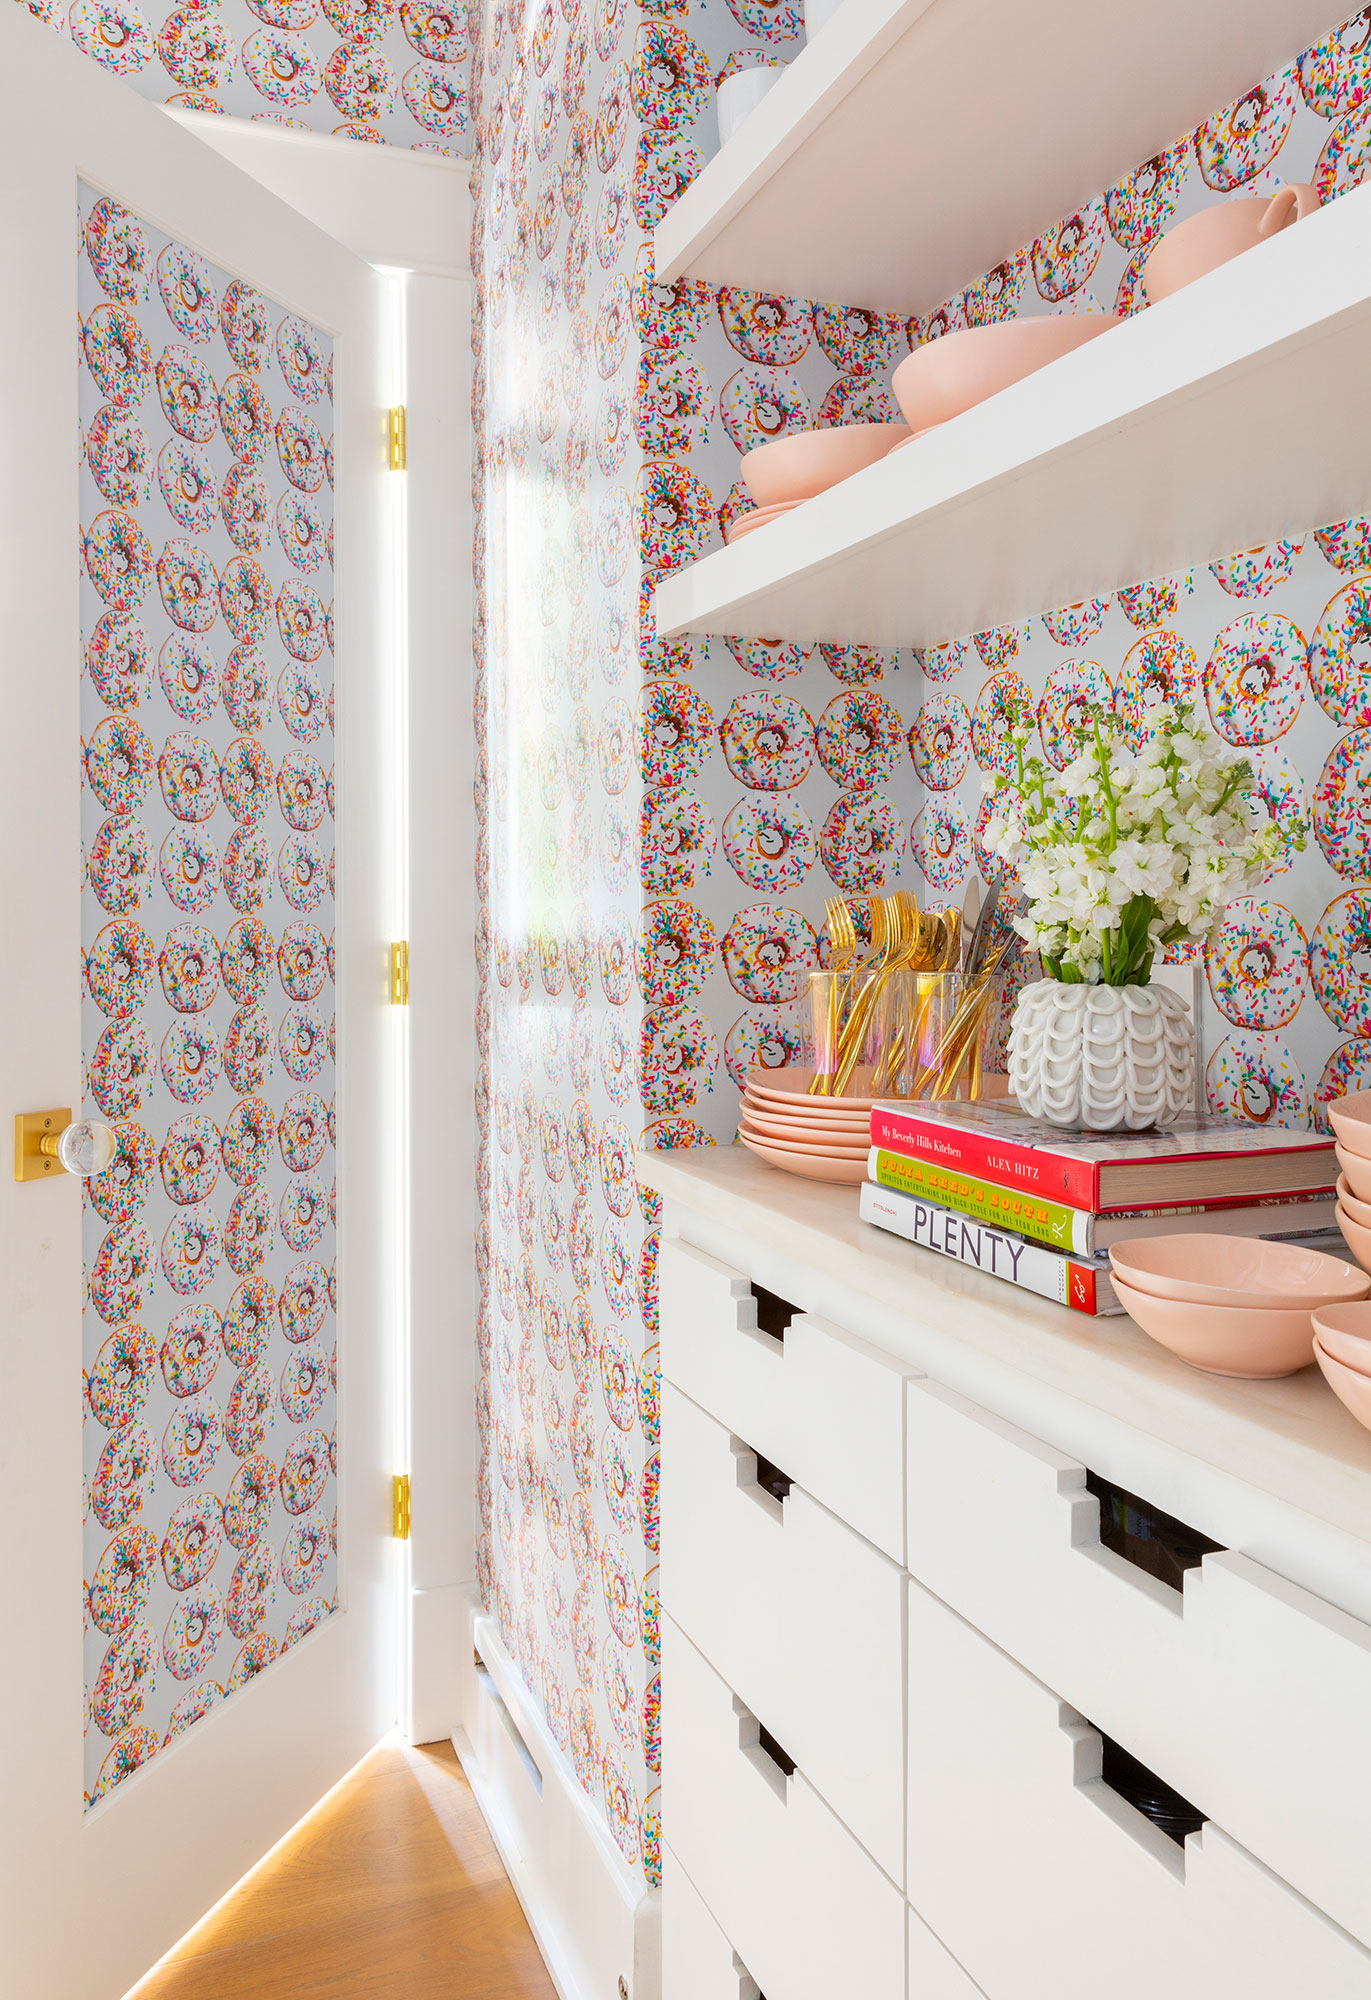 pantry Interiors Photography - Julie Soefer Photography